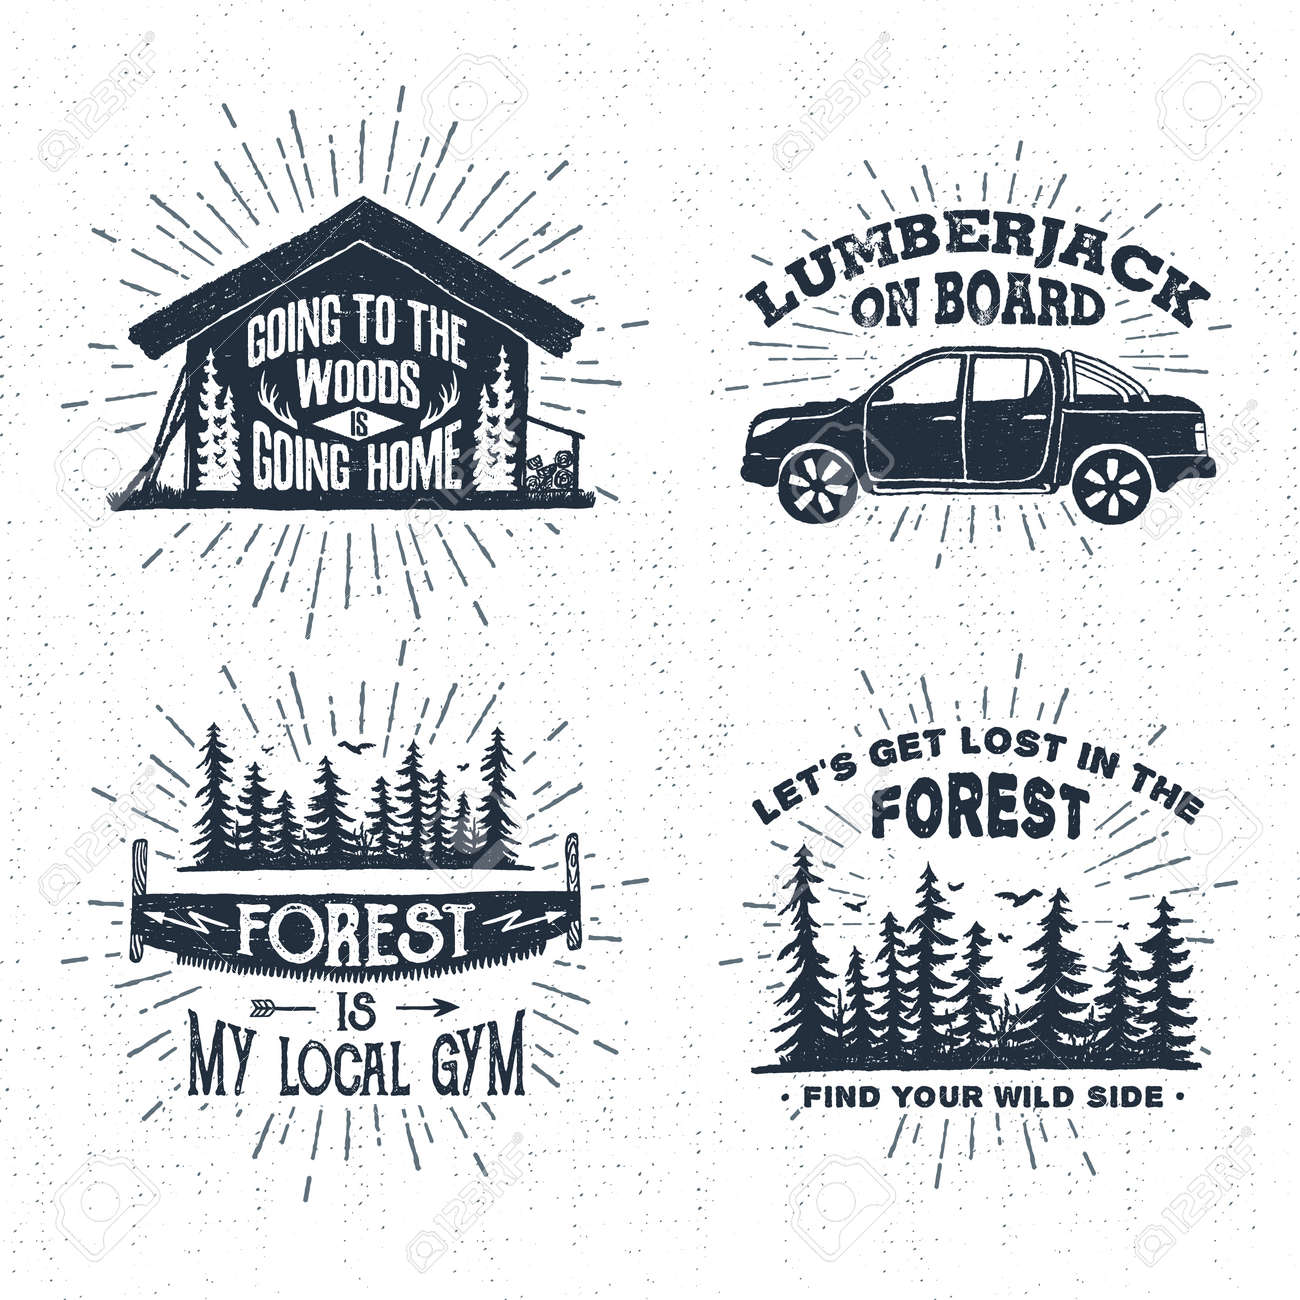 Hand drawn vintage badges set with textured wooden cabin, pickup truck, saw, and spruce forest vector illustrations and inspirational lettering. - 60255373